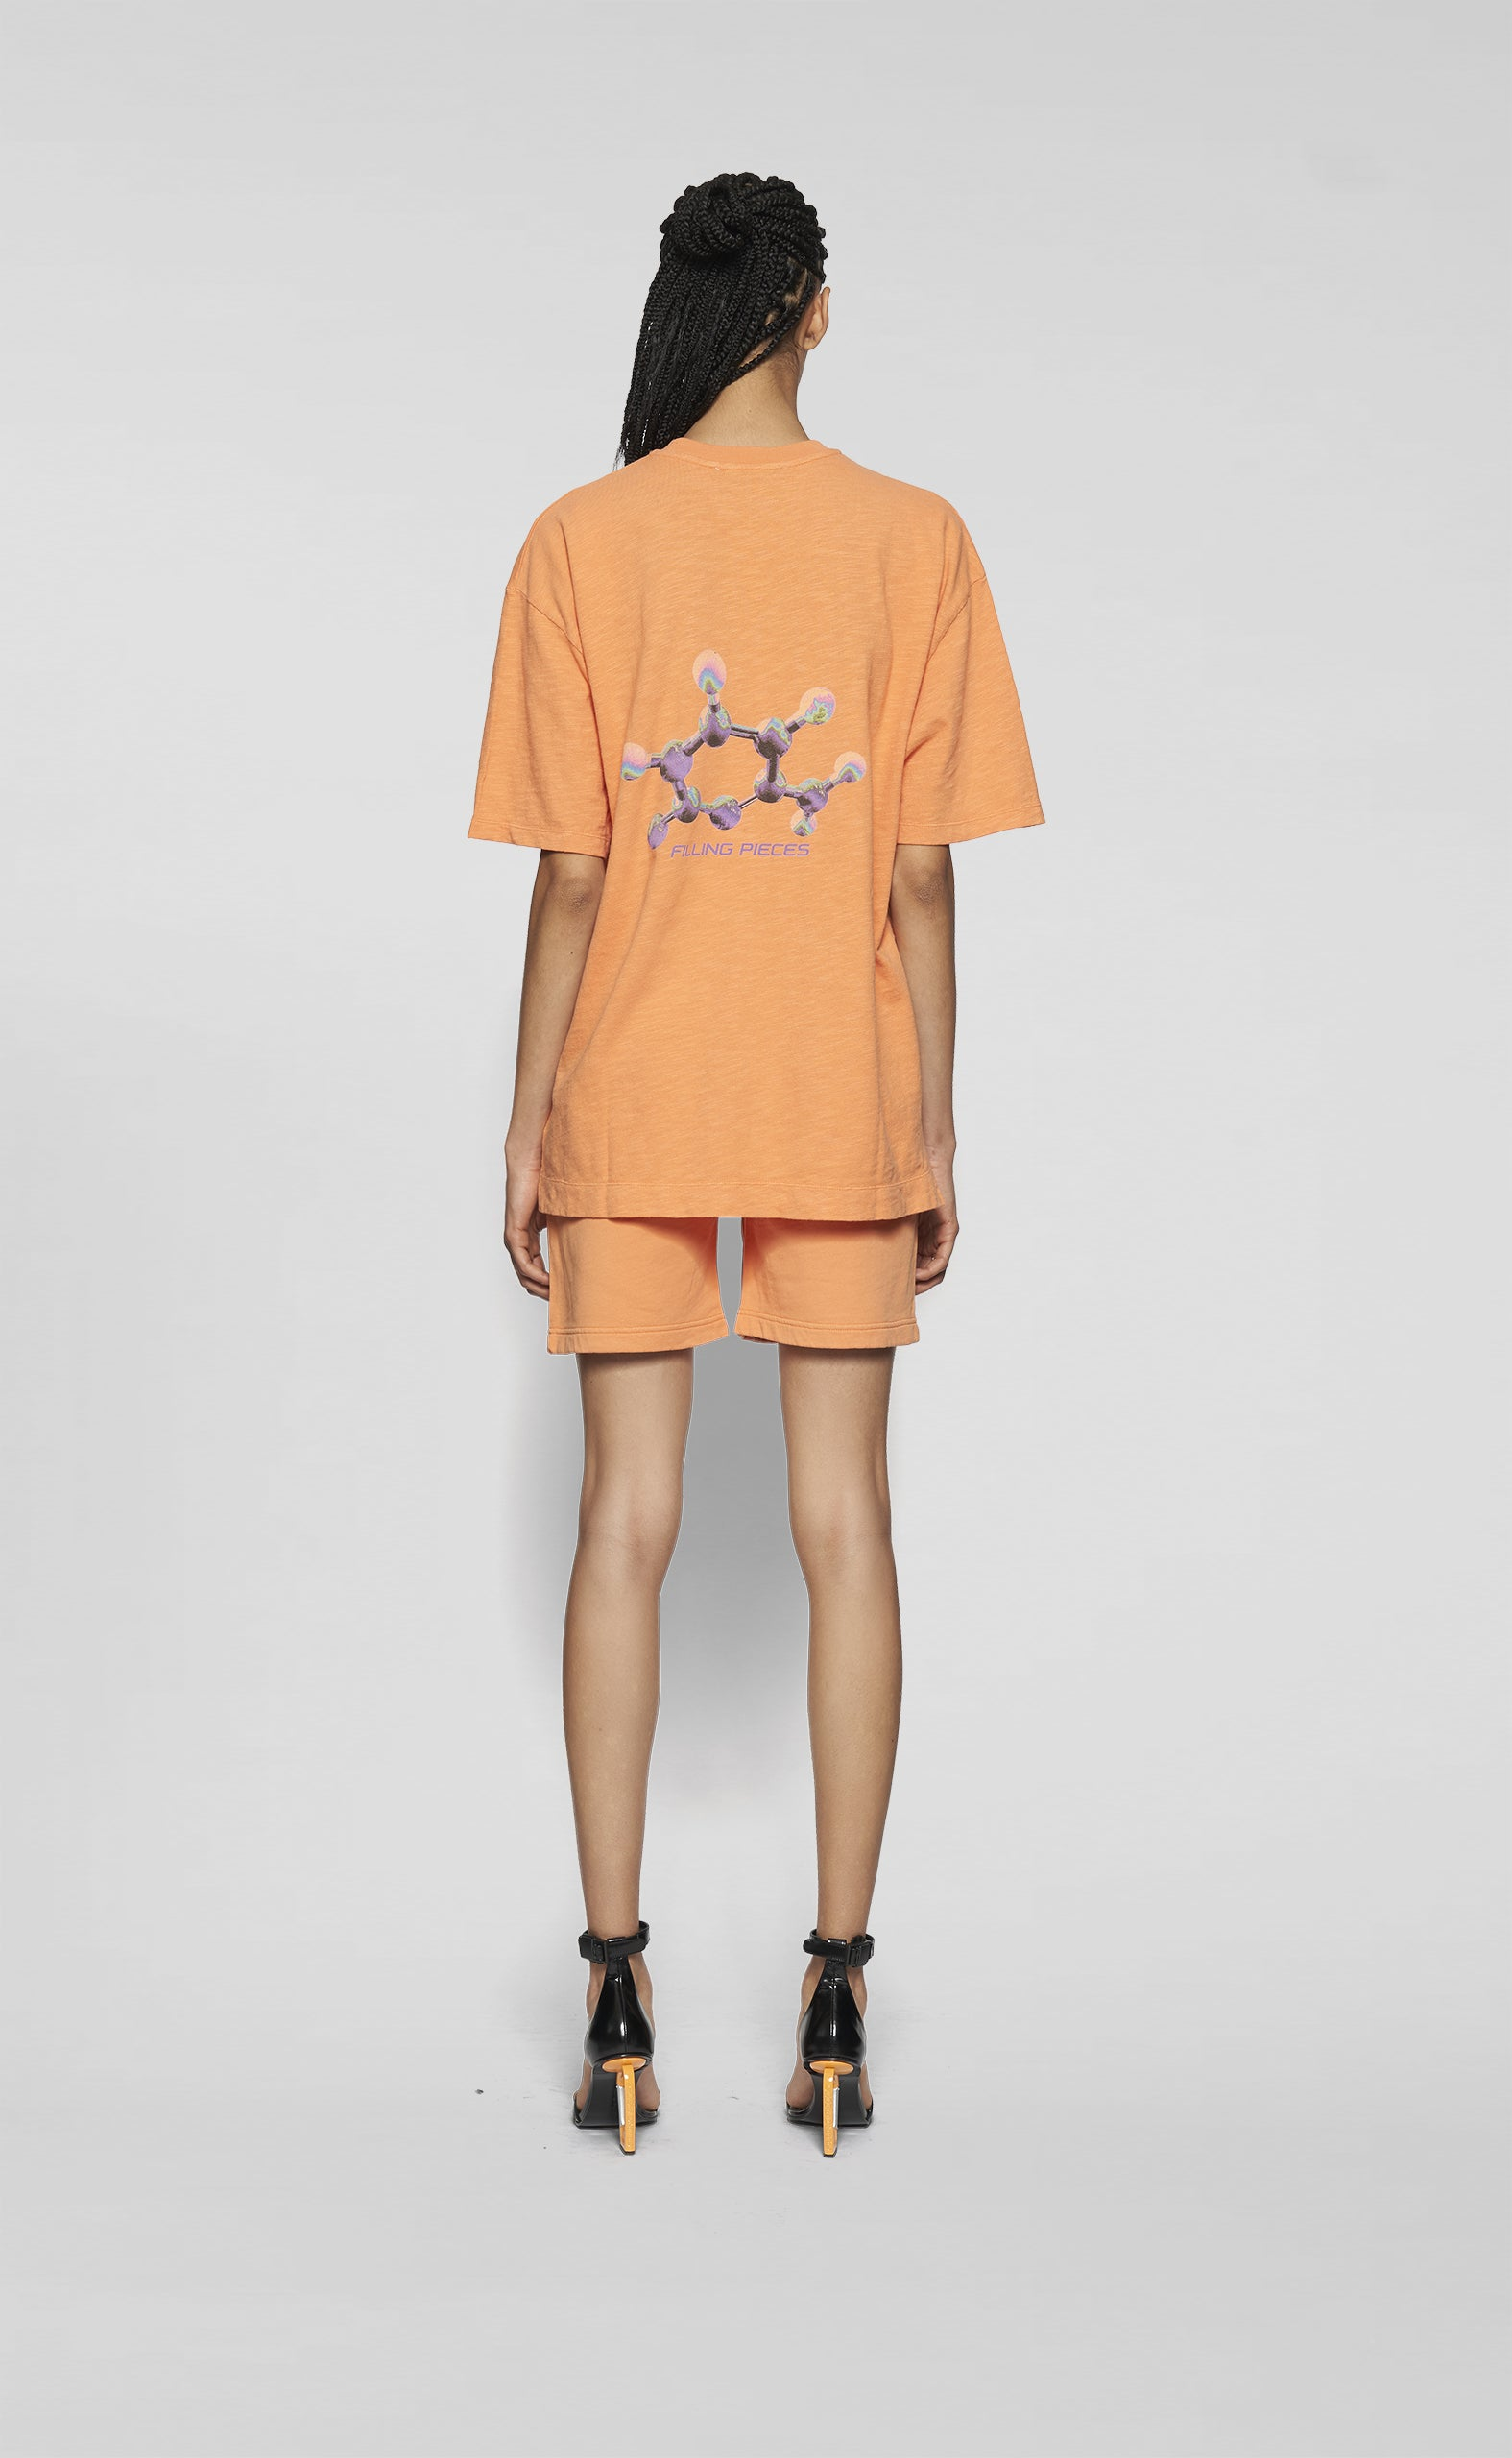 Graphic Tee Molecules Vibrant Orange - women